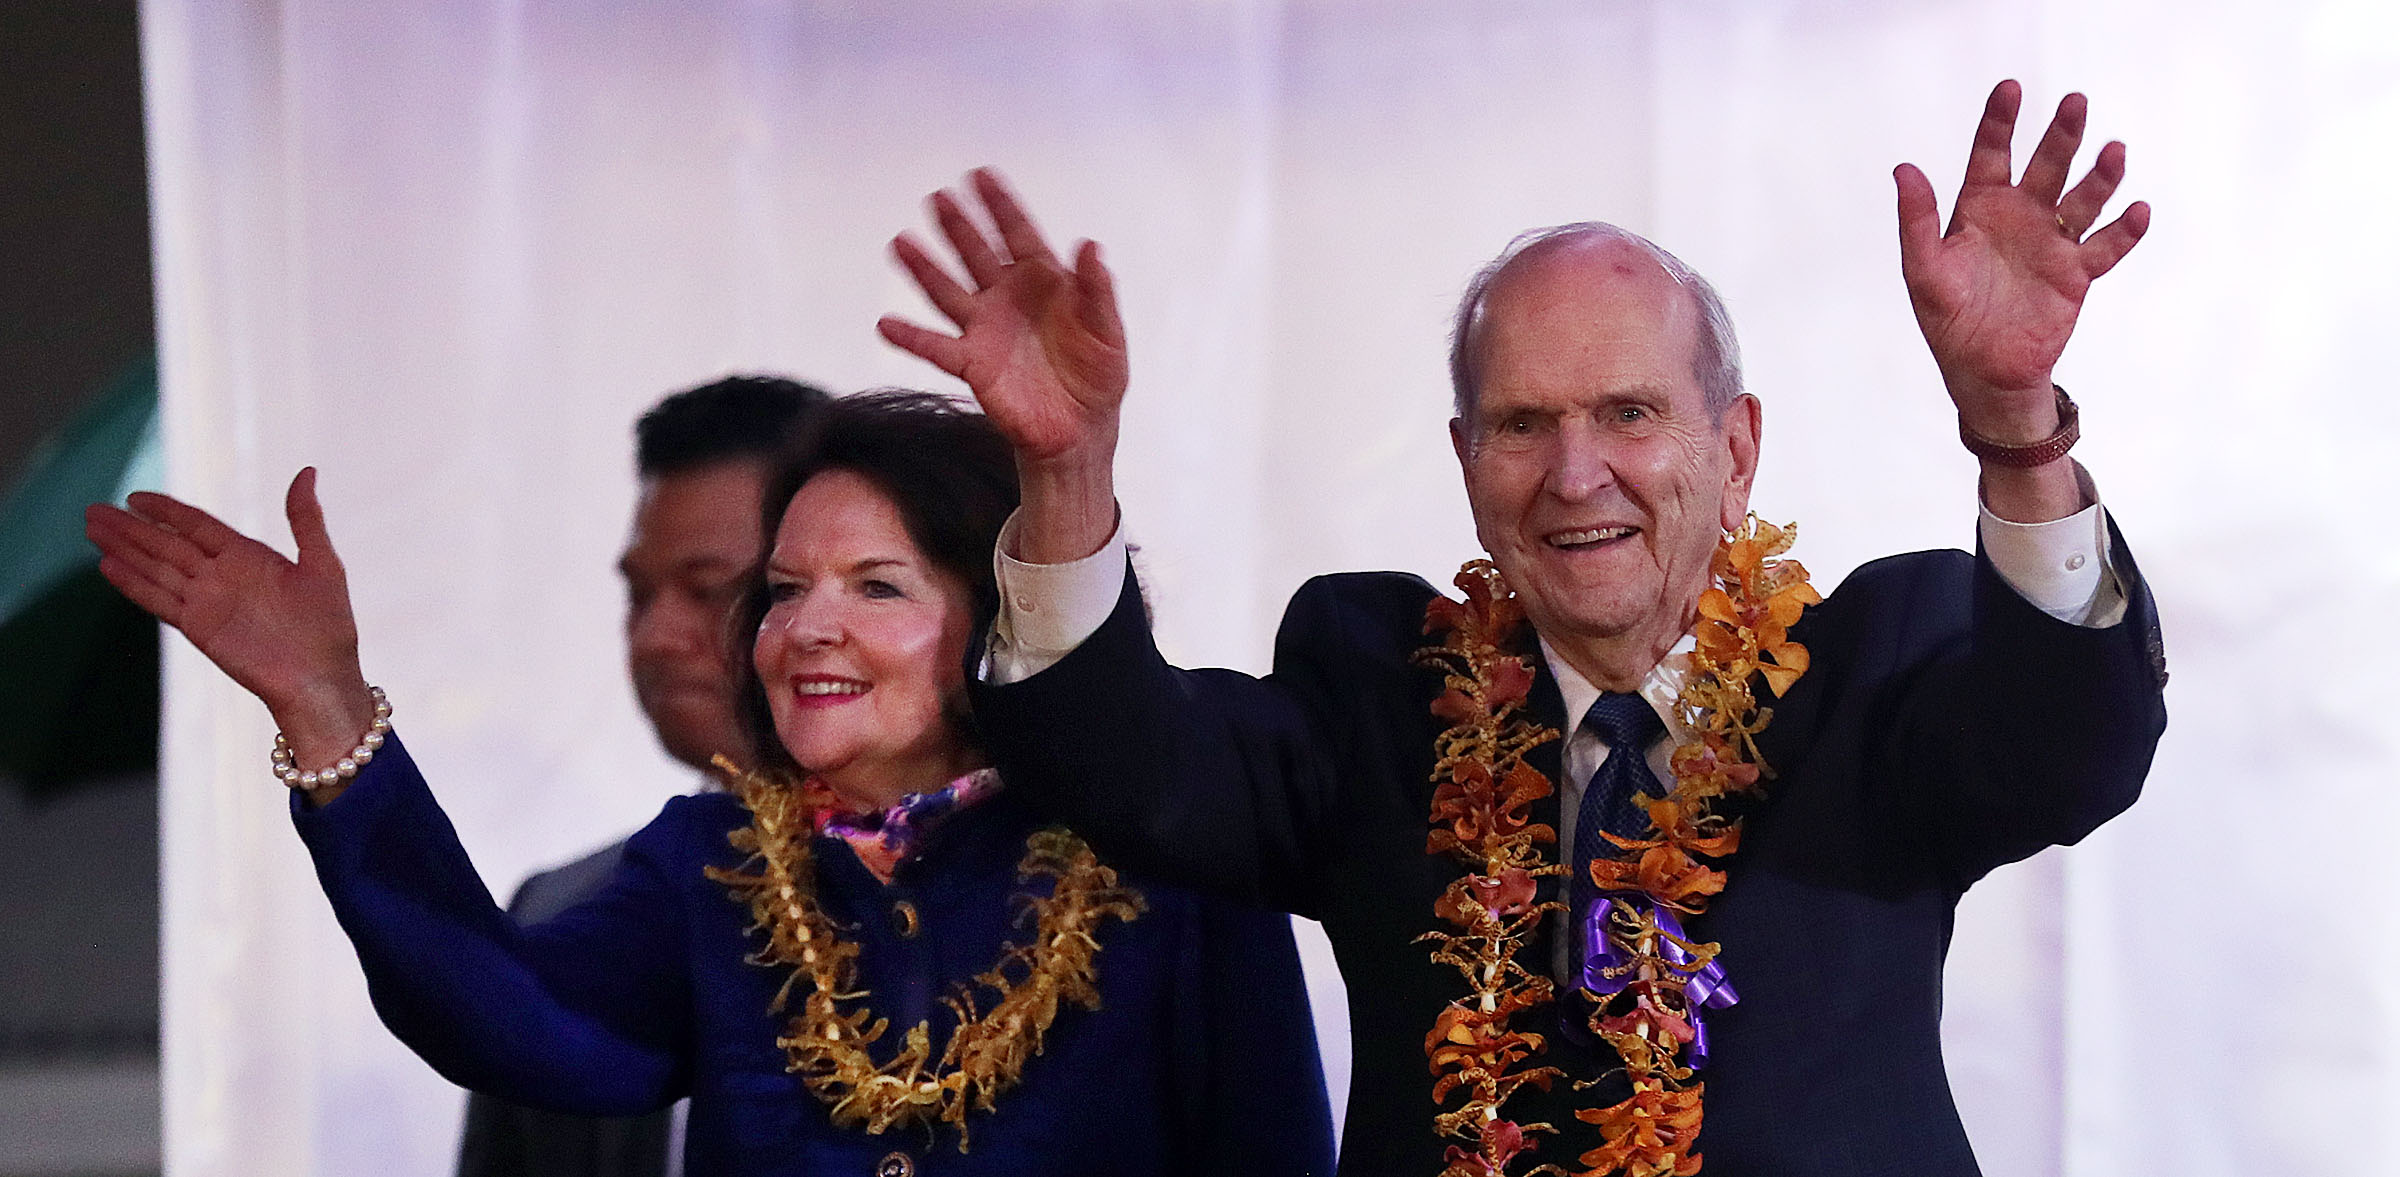 President Russell M. Nelson of The Church of Jesus Christ of Latter-day Saints and his wife, Sister Wendy Nelson, wave to those in attendance at the beginning of a devotional in Apia, Samoa, on Saturday, May 18, 2019.